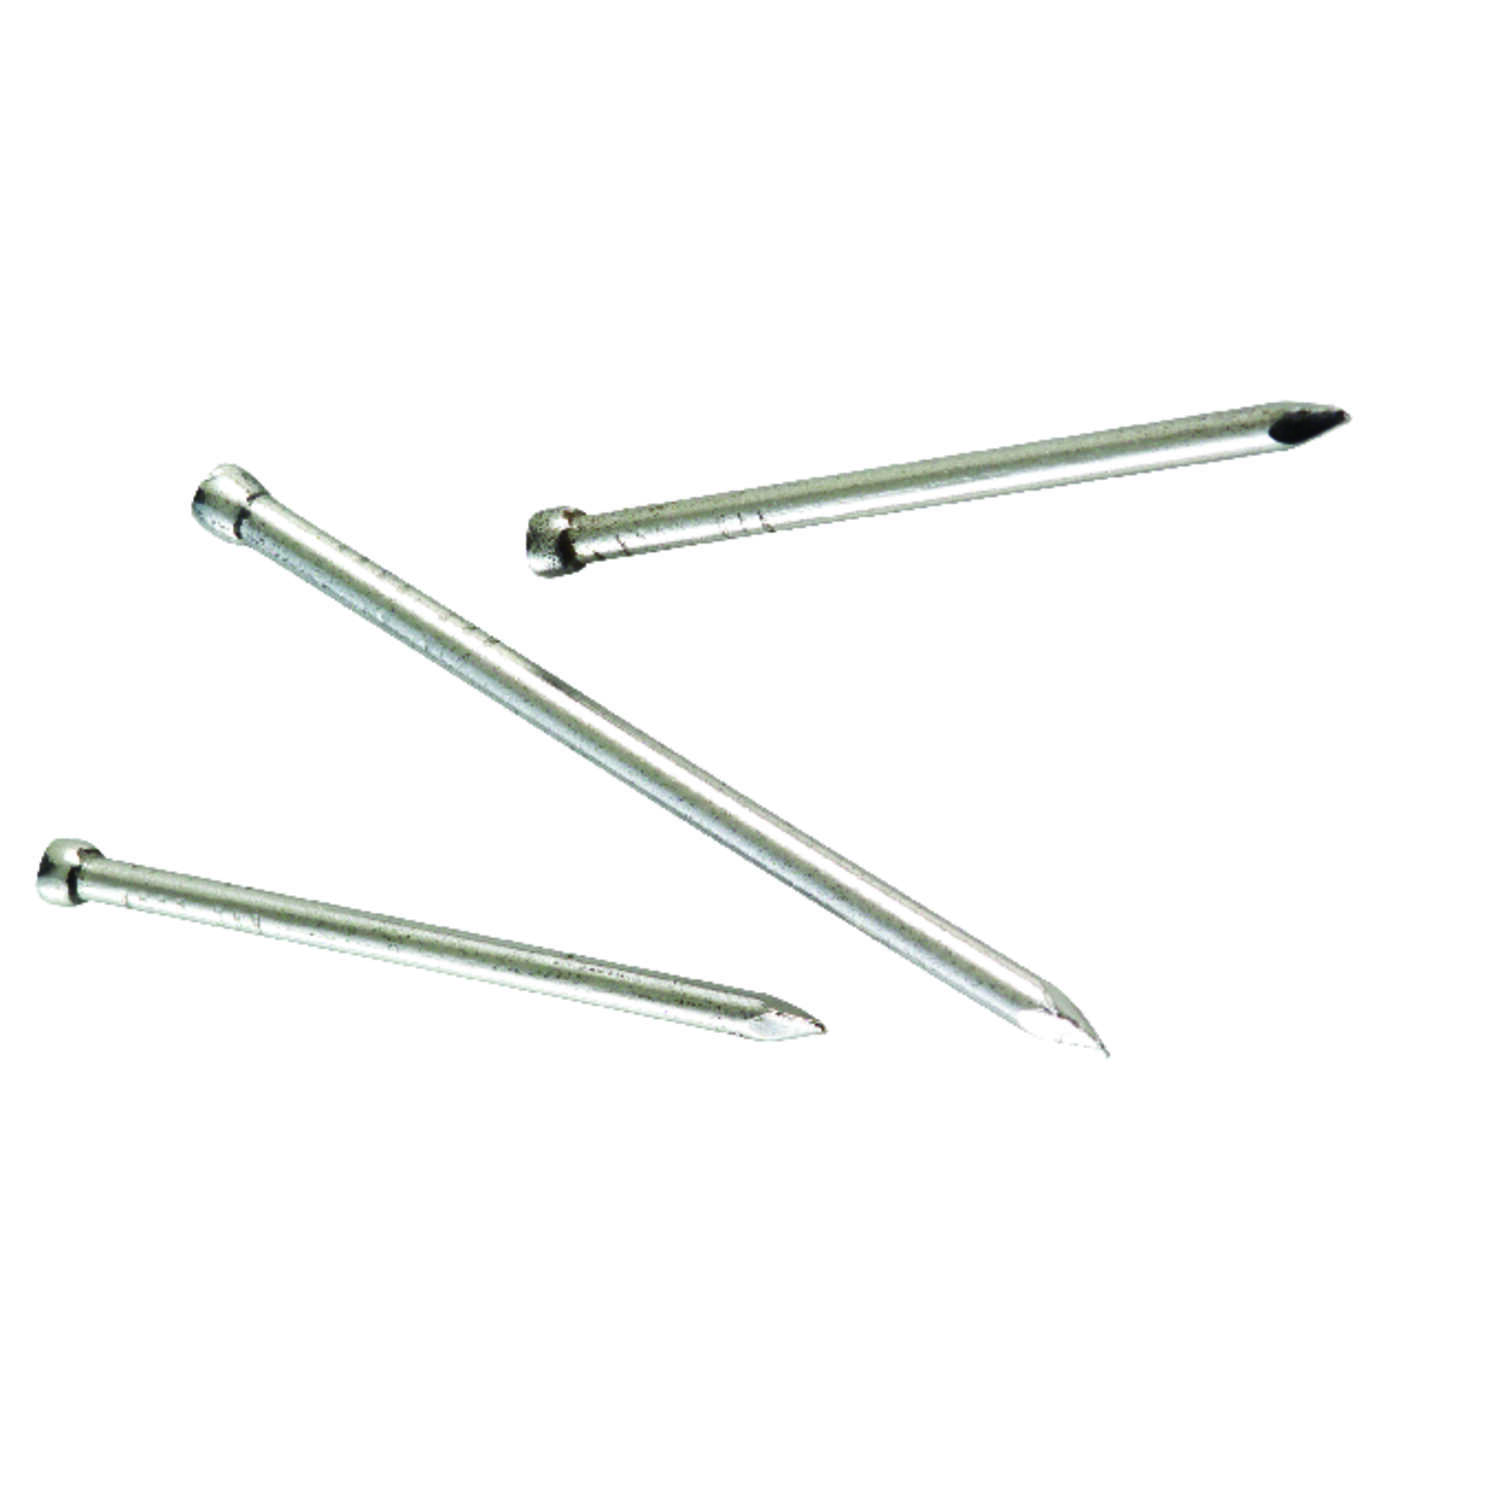 Simpson Strong-Tie  8D  2-1/2 in. L Finish  Stainless Steel  Nail  Brad Head Smooth Shank  146 pk 1